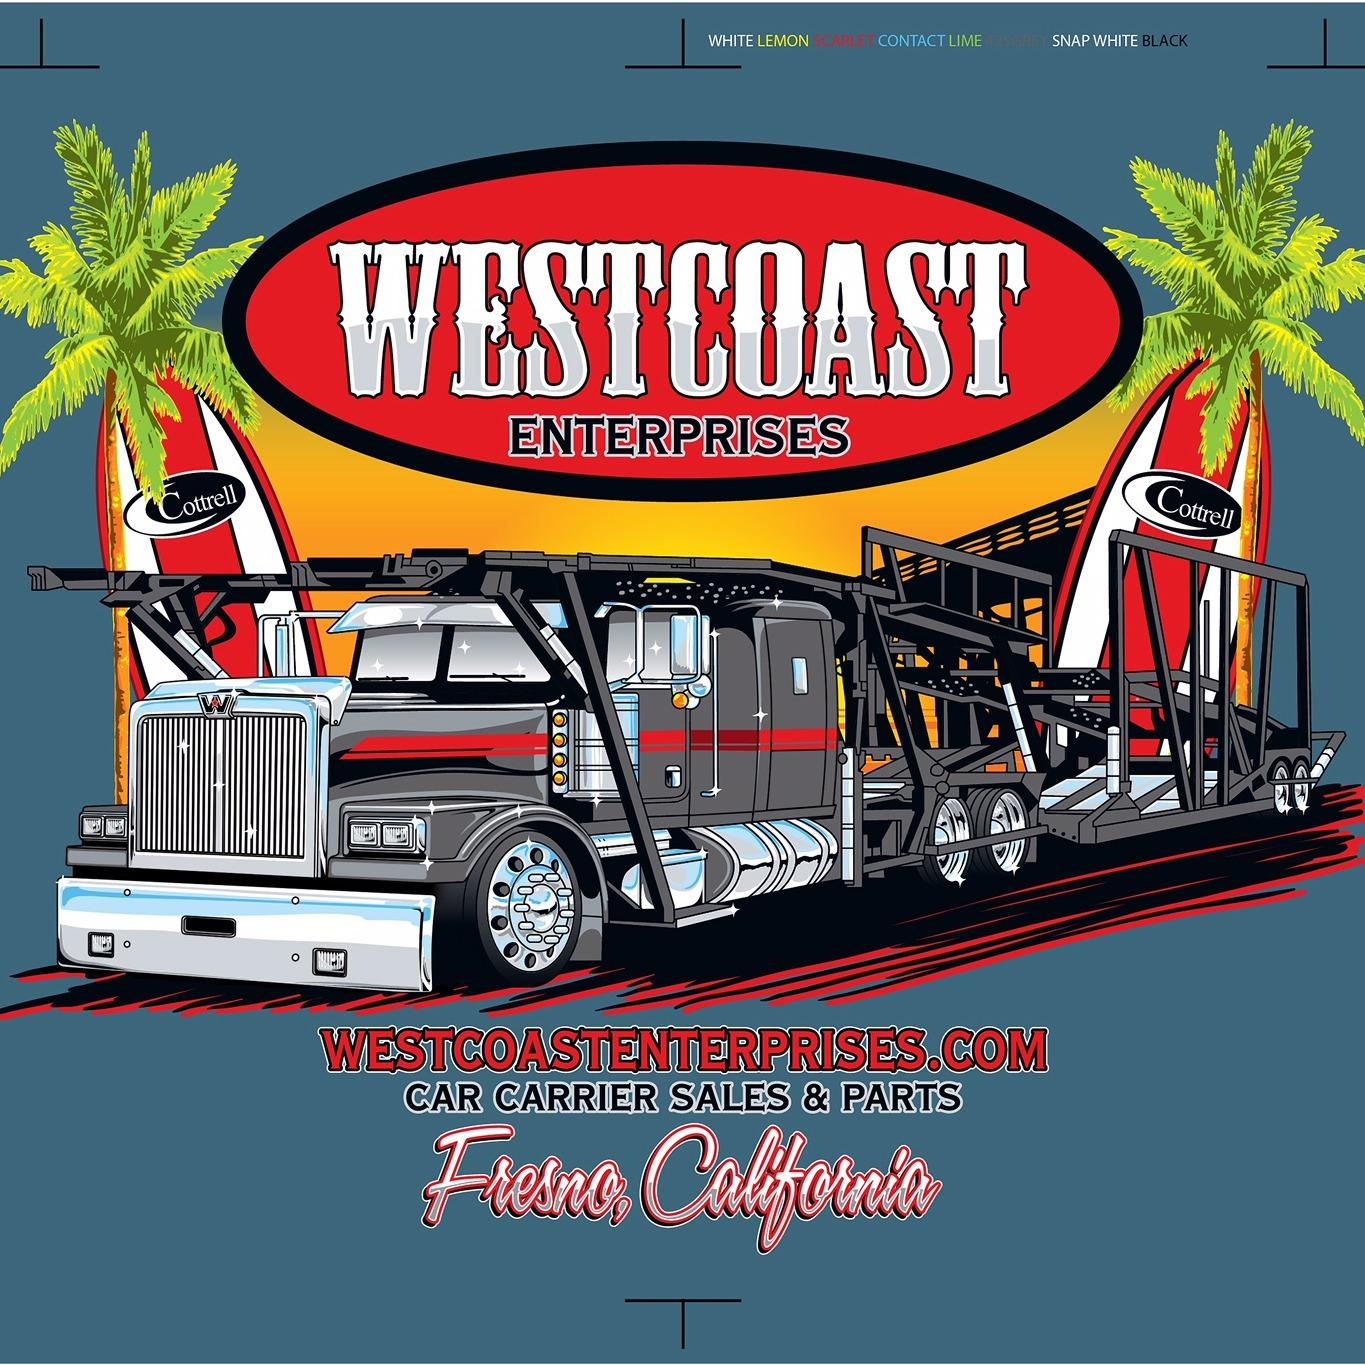 West Coast Enterprises Truck and Trailer Sales Inc.